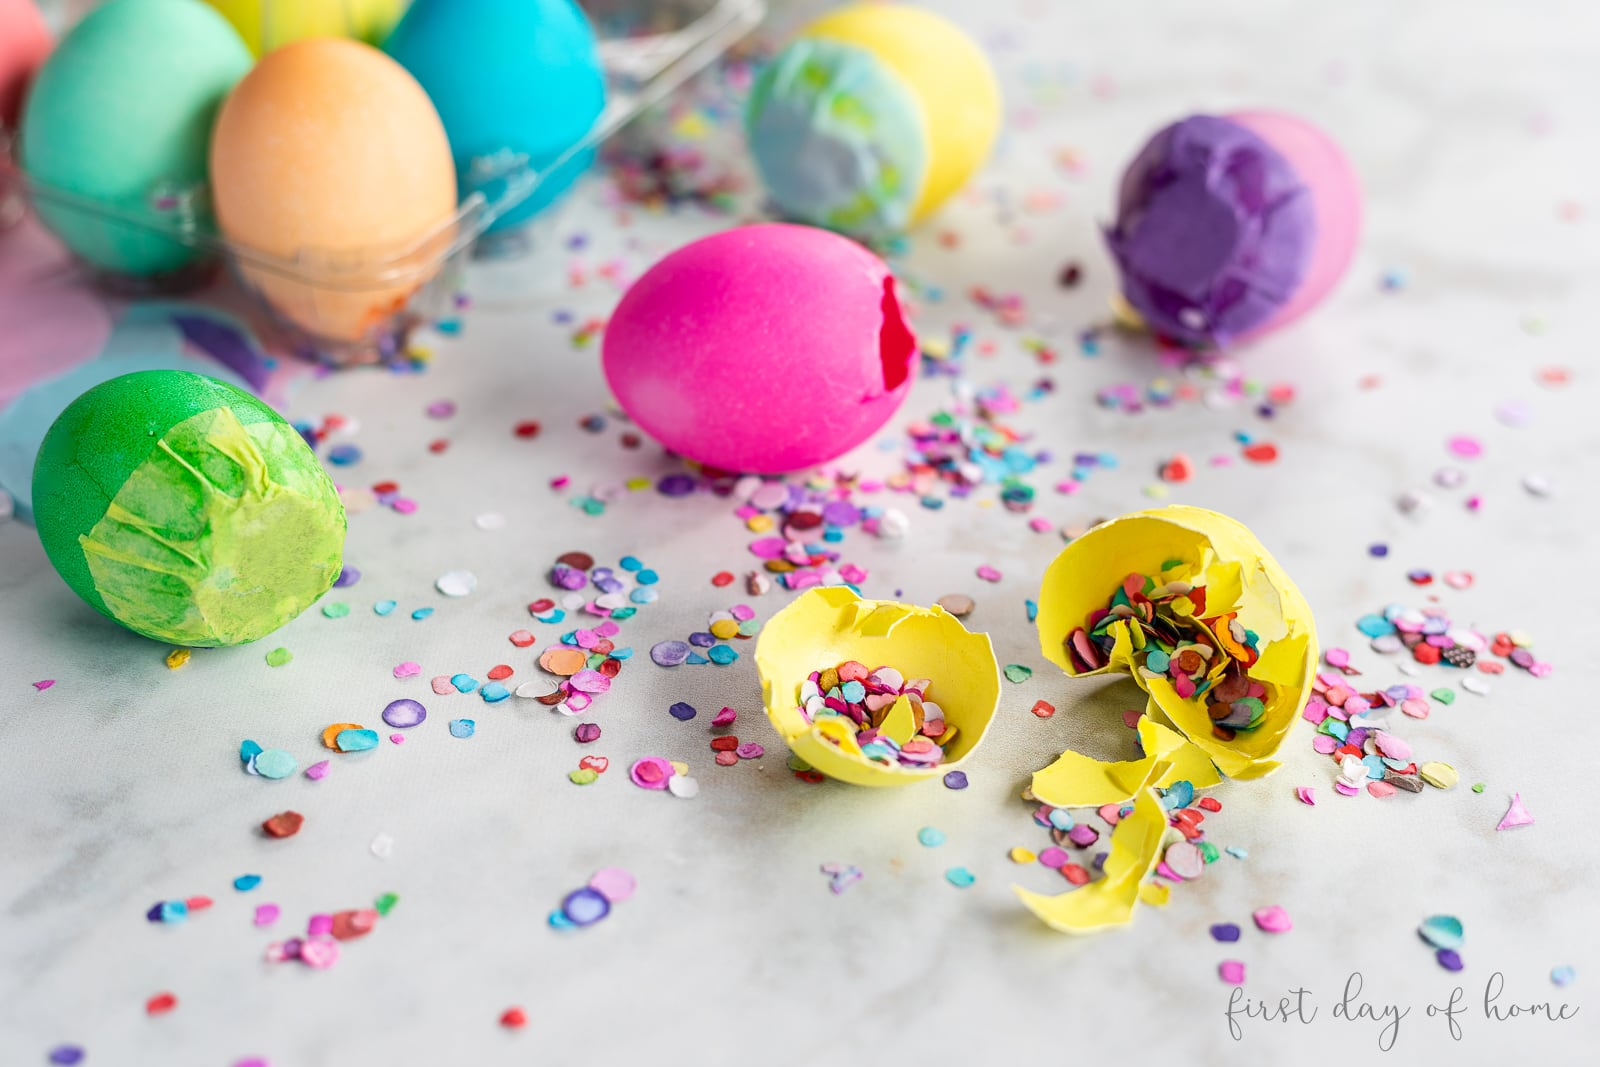 Confetti egg cracked open to reveal confetti inside with more eggs in background